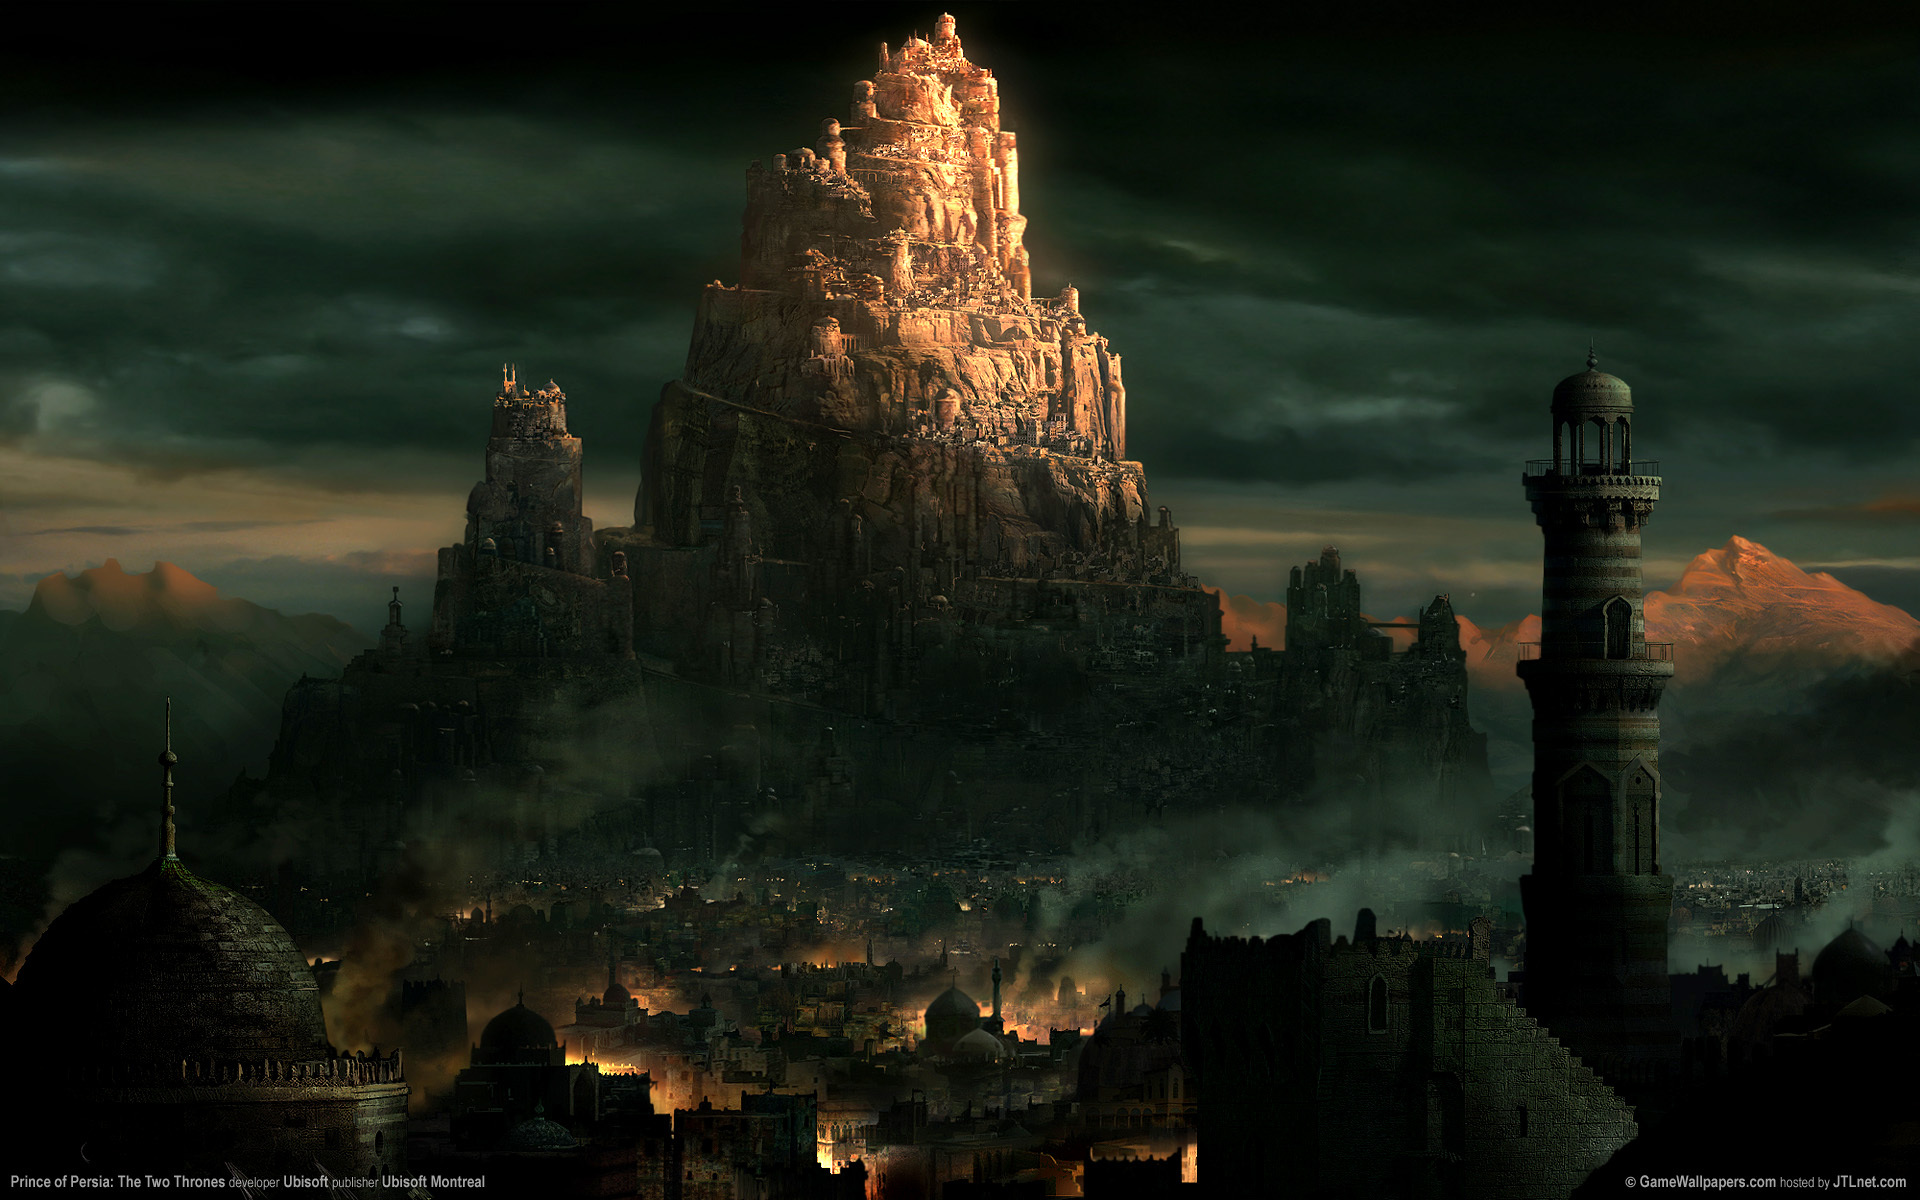 Prince Of Persia Hd Wallpaper Prince Of Persia The Two Thrones Full Hd Wallpaper And